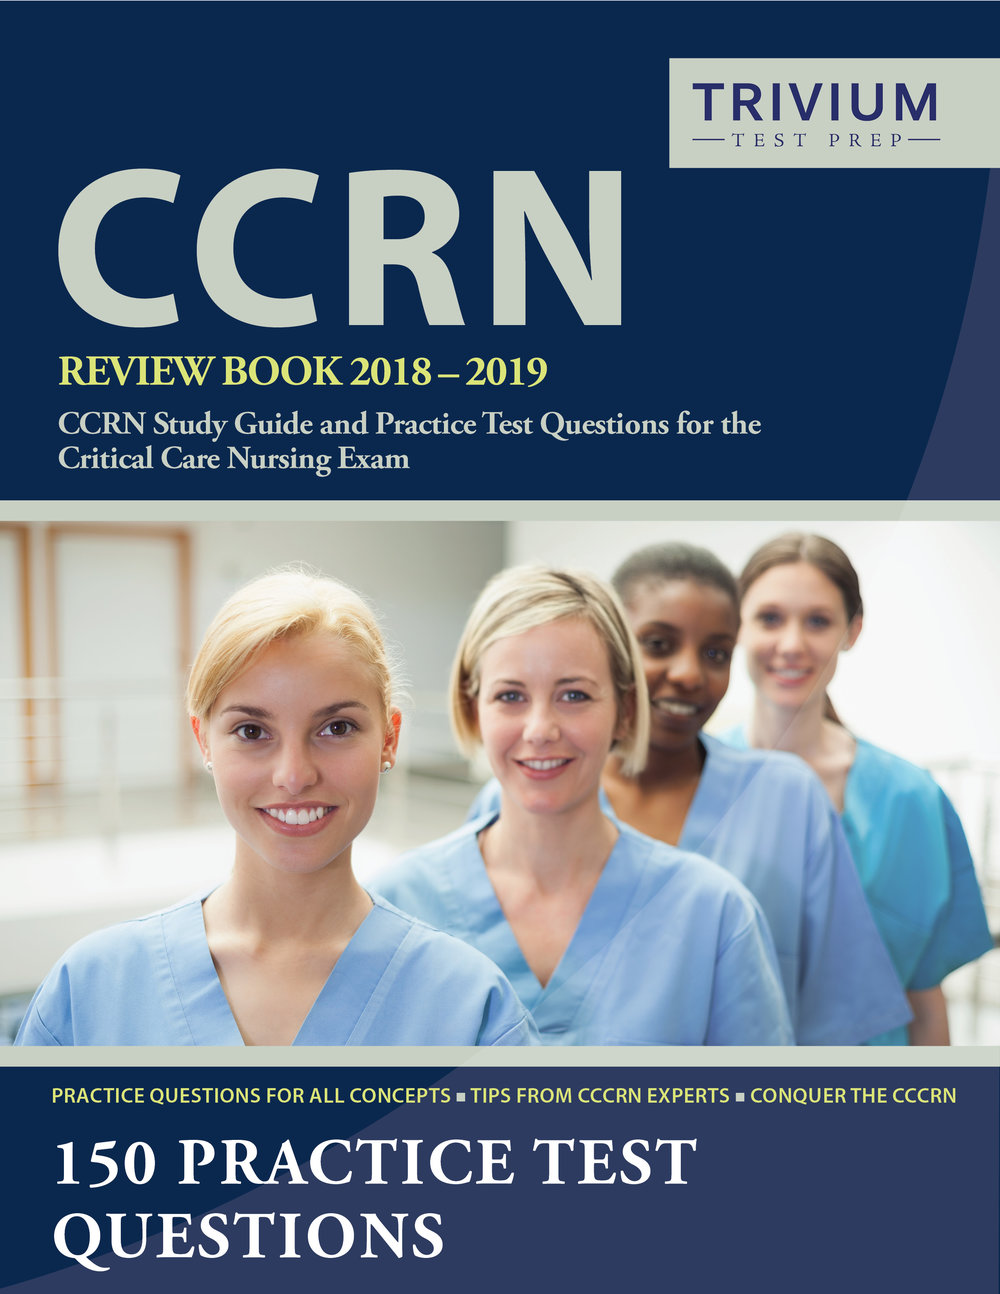 CCRN Review Book Study Guide and Practice Test Questions